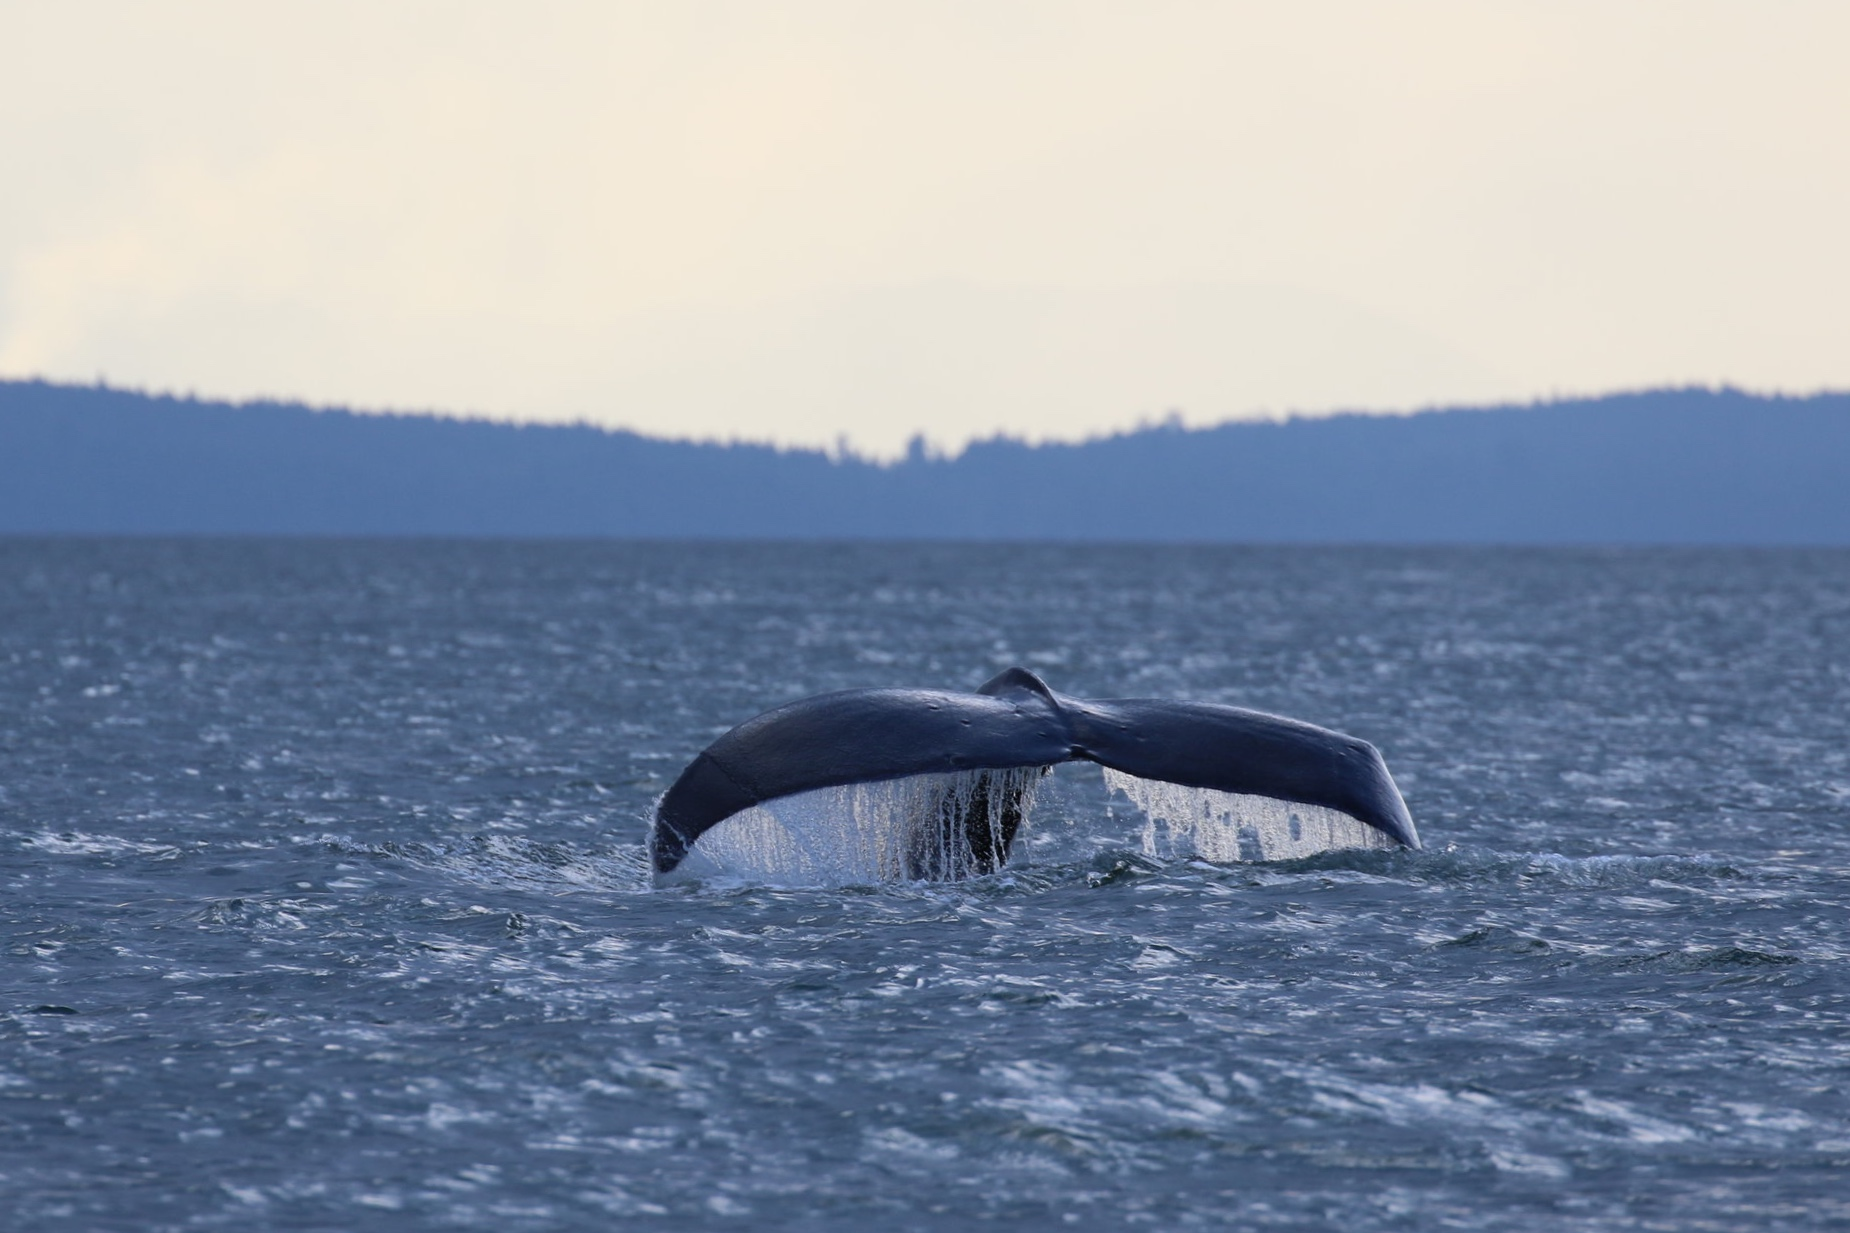 Humpbacks in the evening! Photo by Natalie Reichenbacher (3:30).